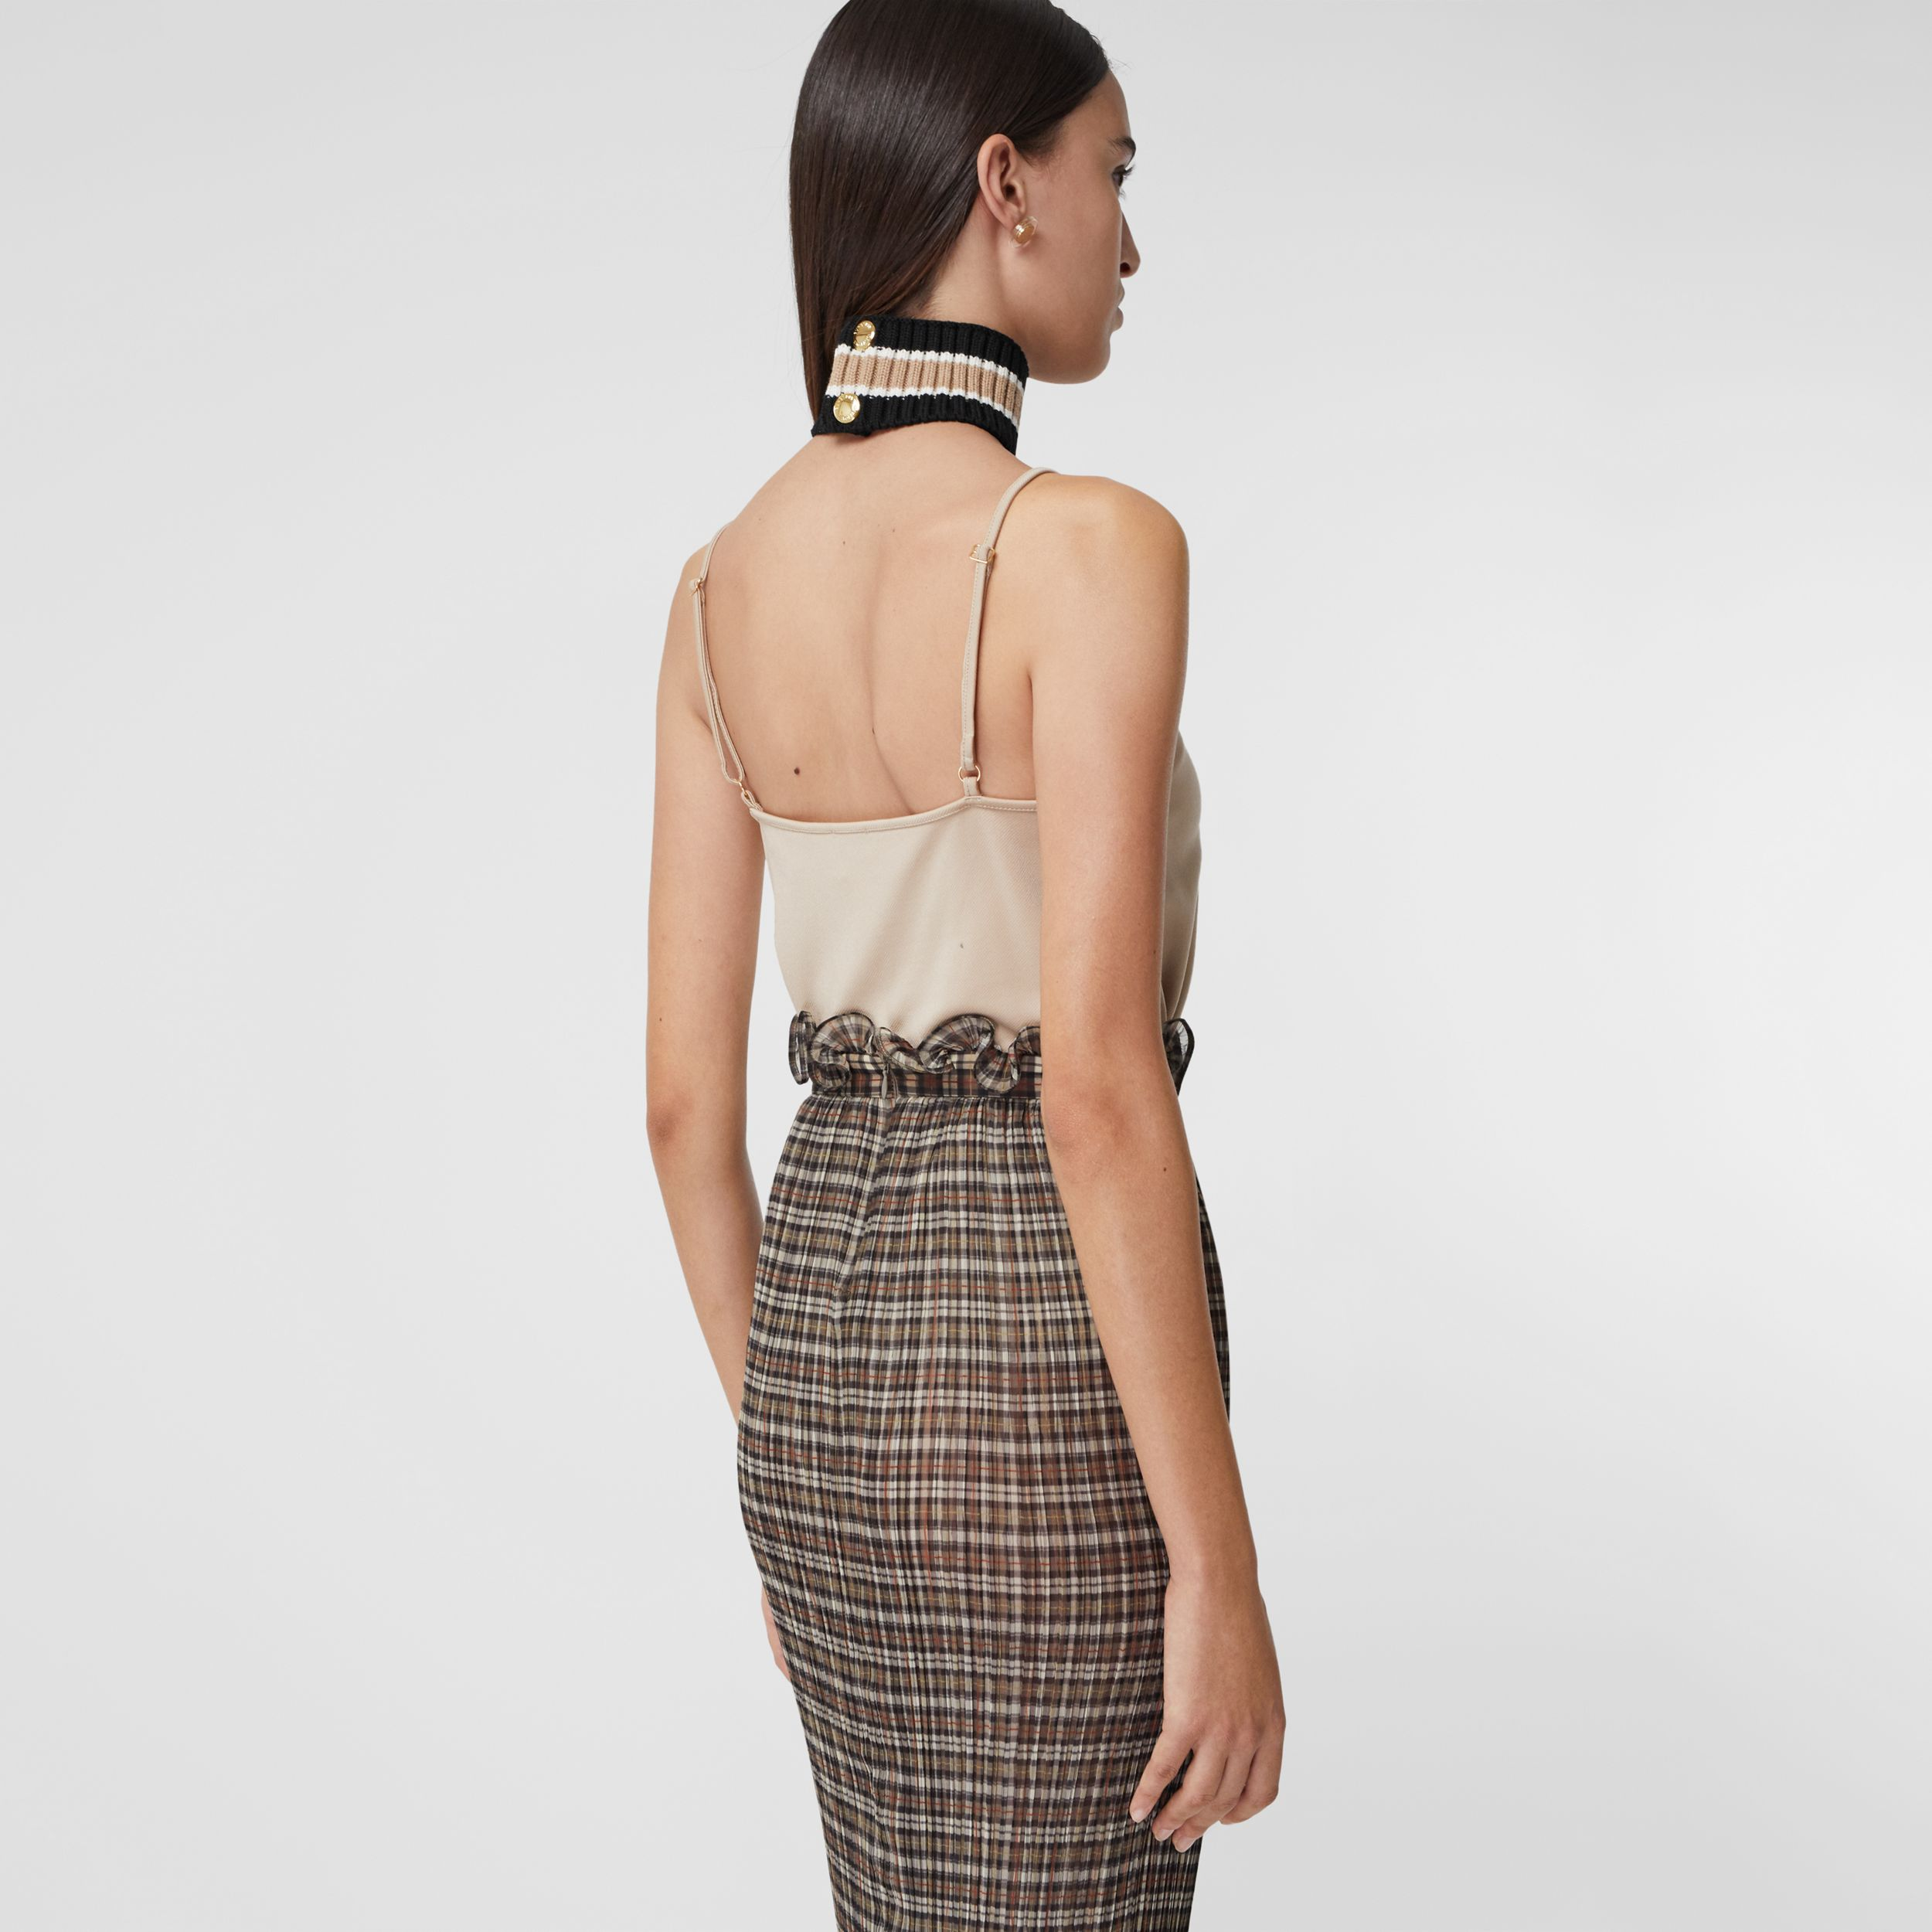 Monogram Motif Stretch Jersey Camisole in Soft Fawn - Women | Burberry - 3